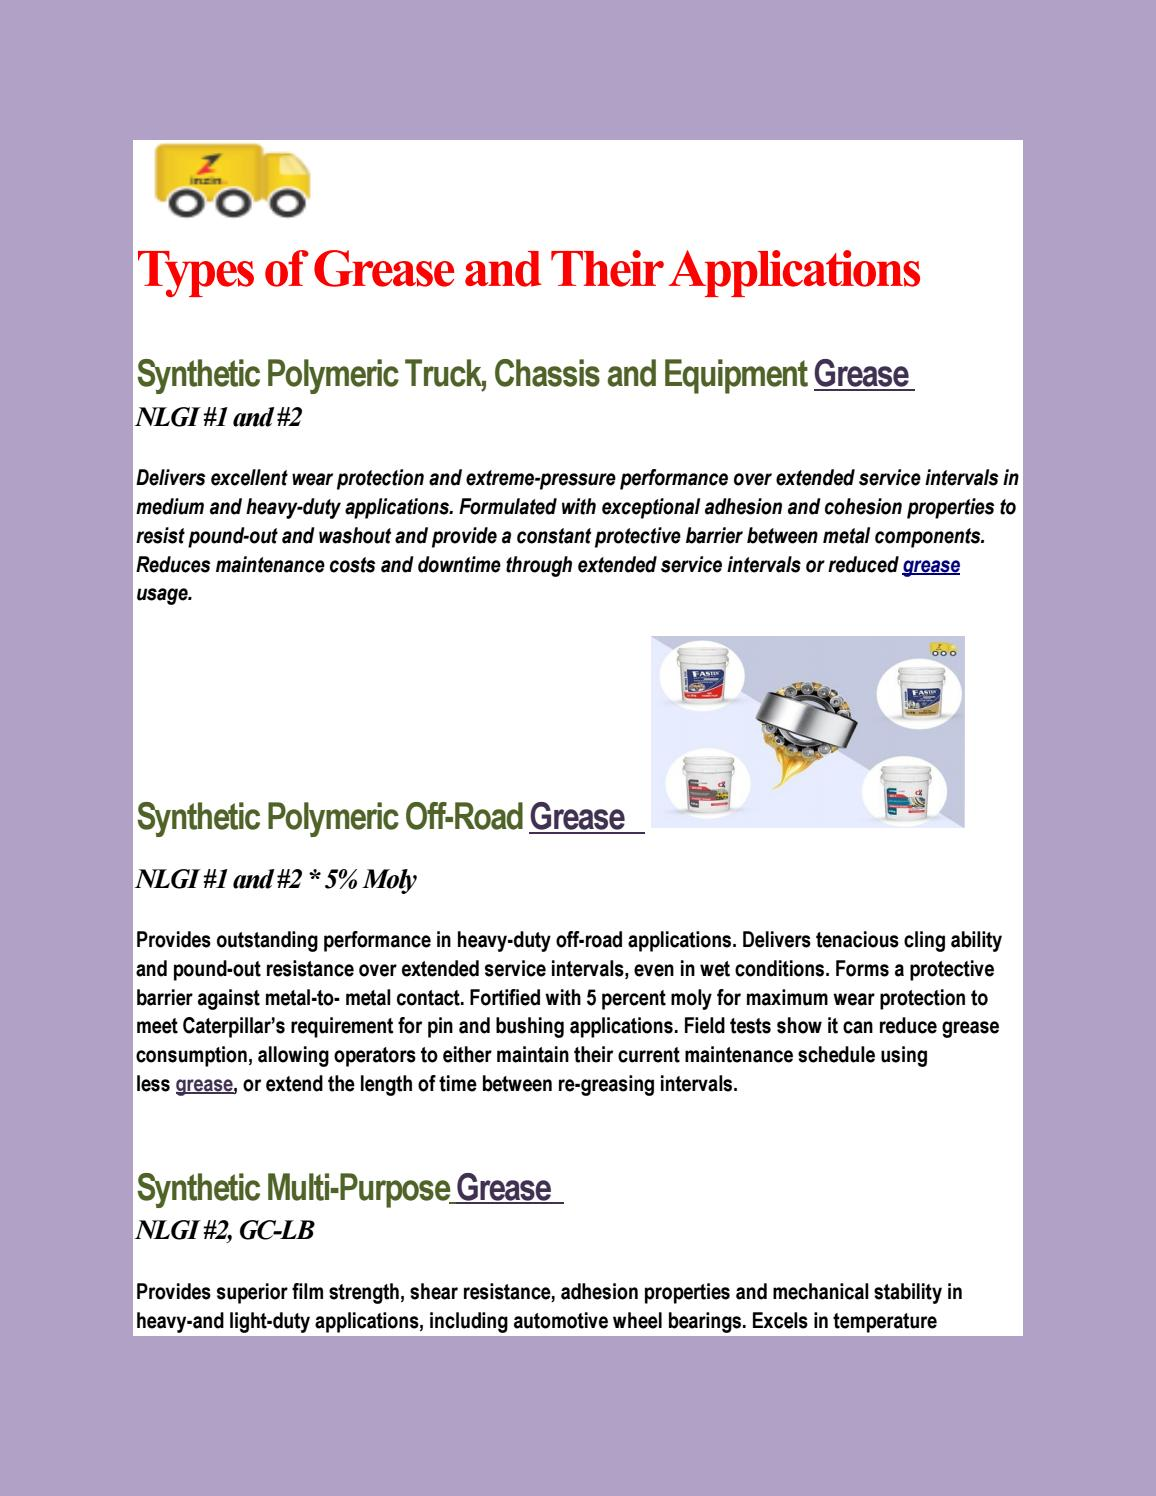 Types of Grease and Their Applications by inzin - issuu